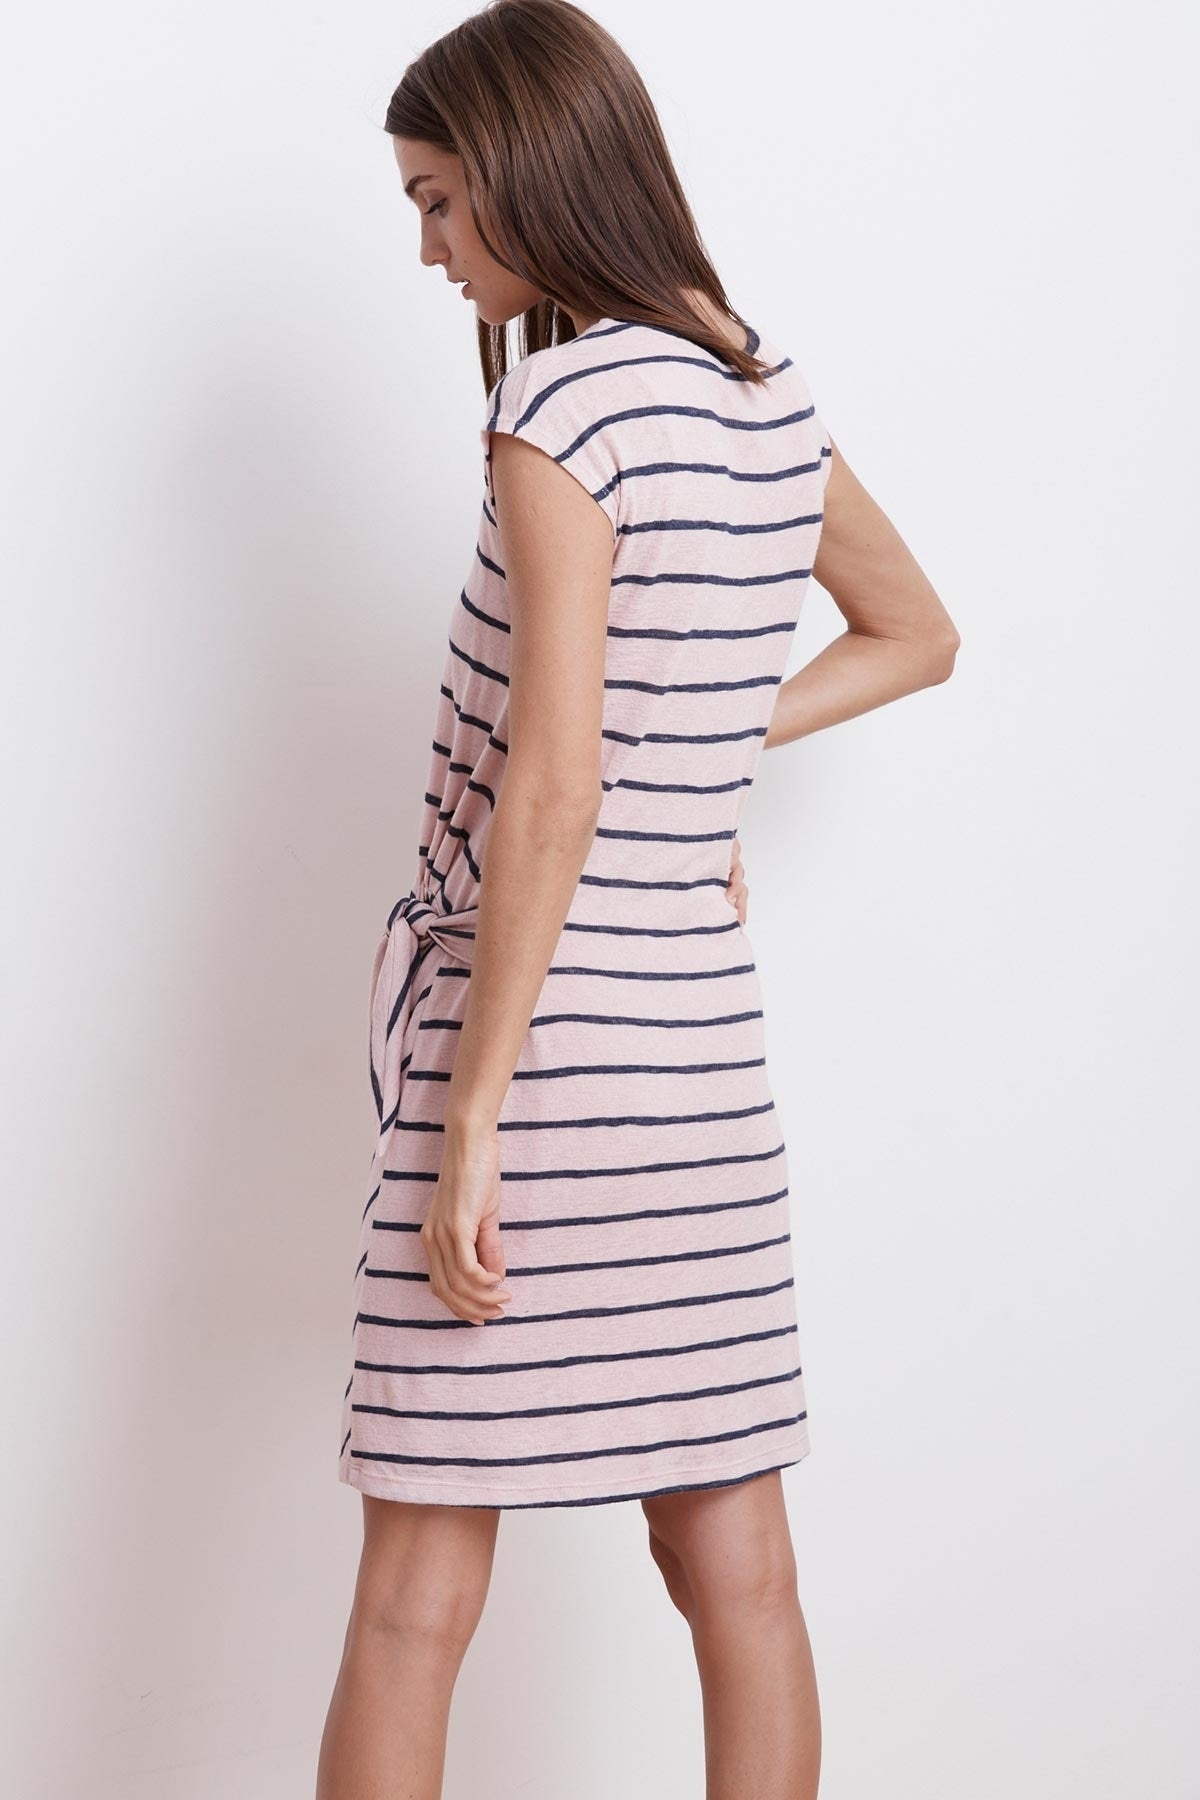 BELLAMY STRIPE TEXTURED KNIT KNOT DRESS